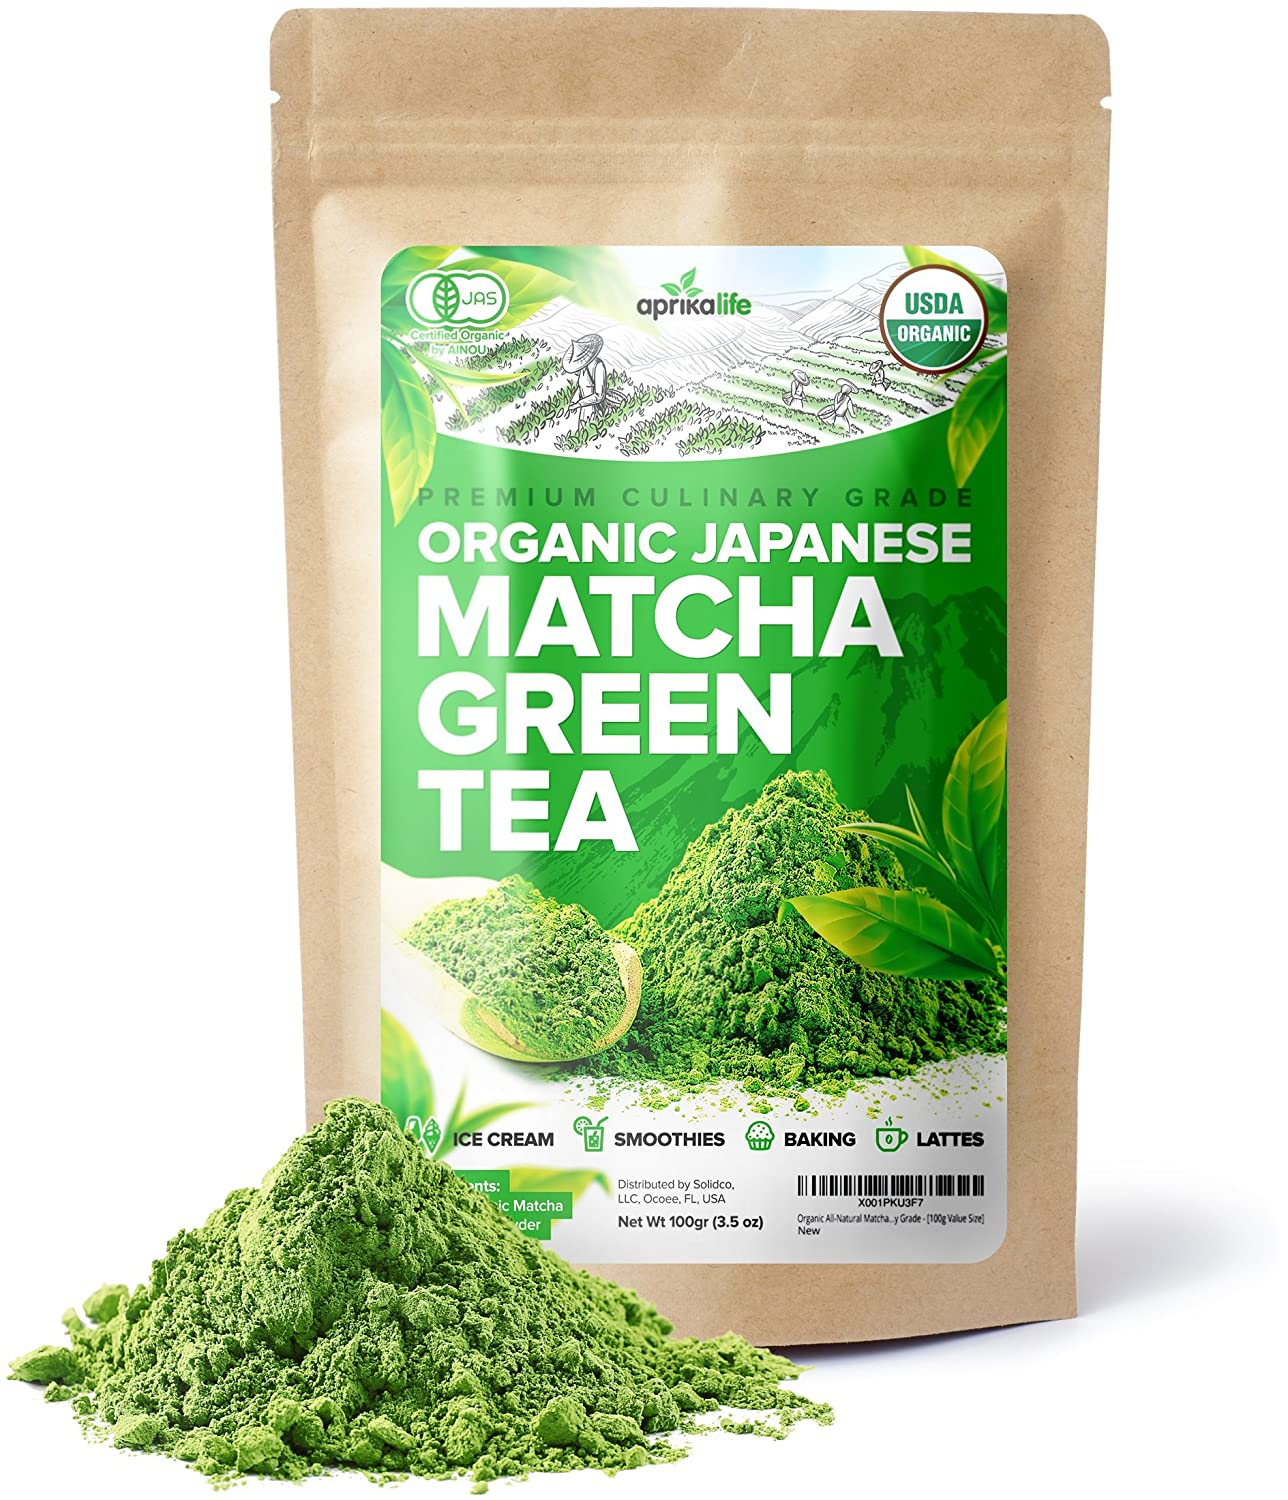 Organic Japanese Matcha Green Tea Powder – USDA & JAS Organic - Authentic Japanese Origin - Premium Culinary Grade - [100g Value Size] Aprika